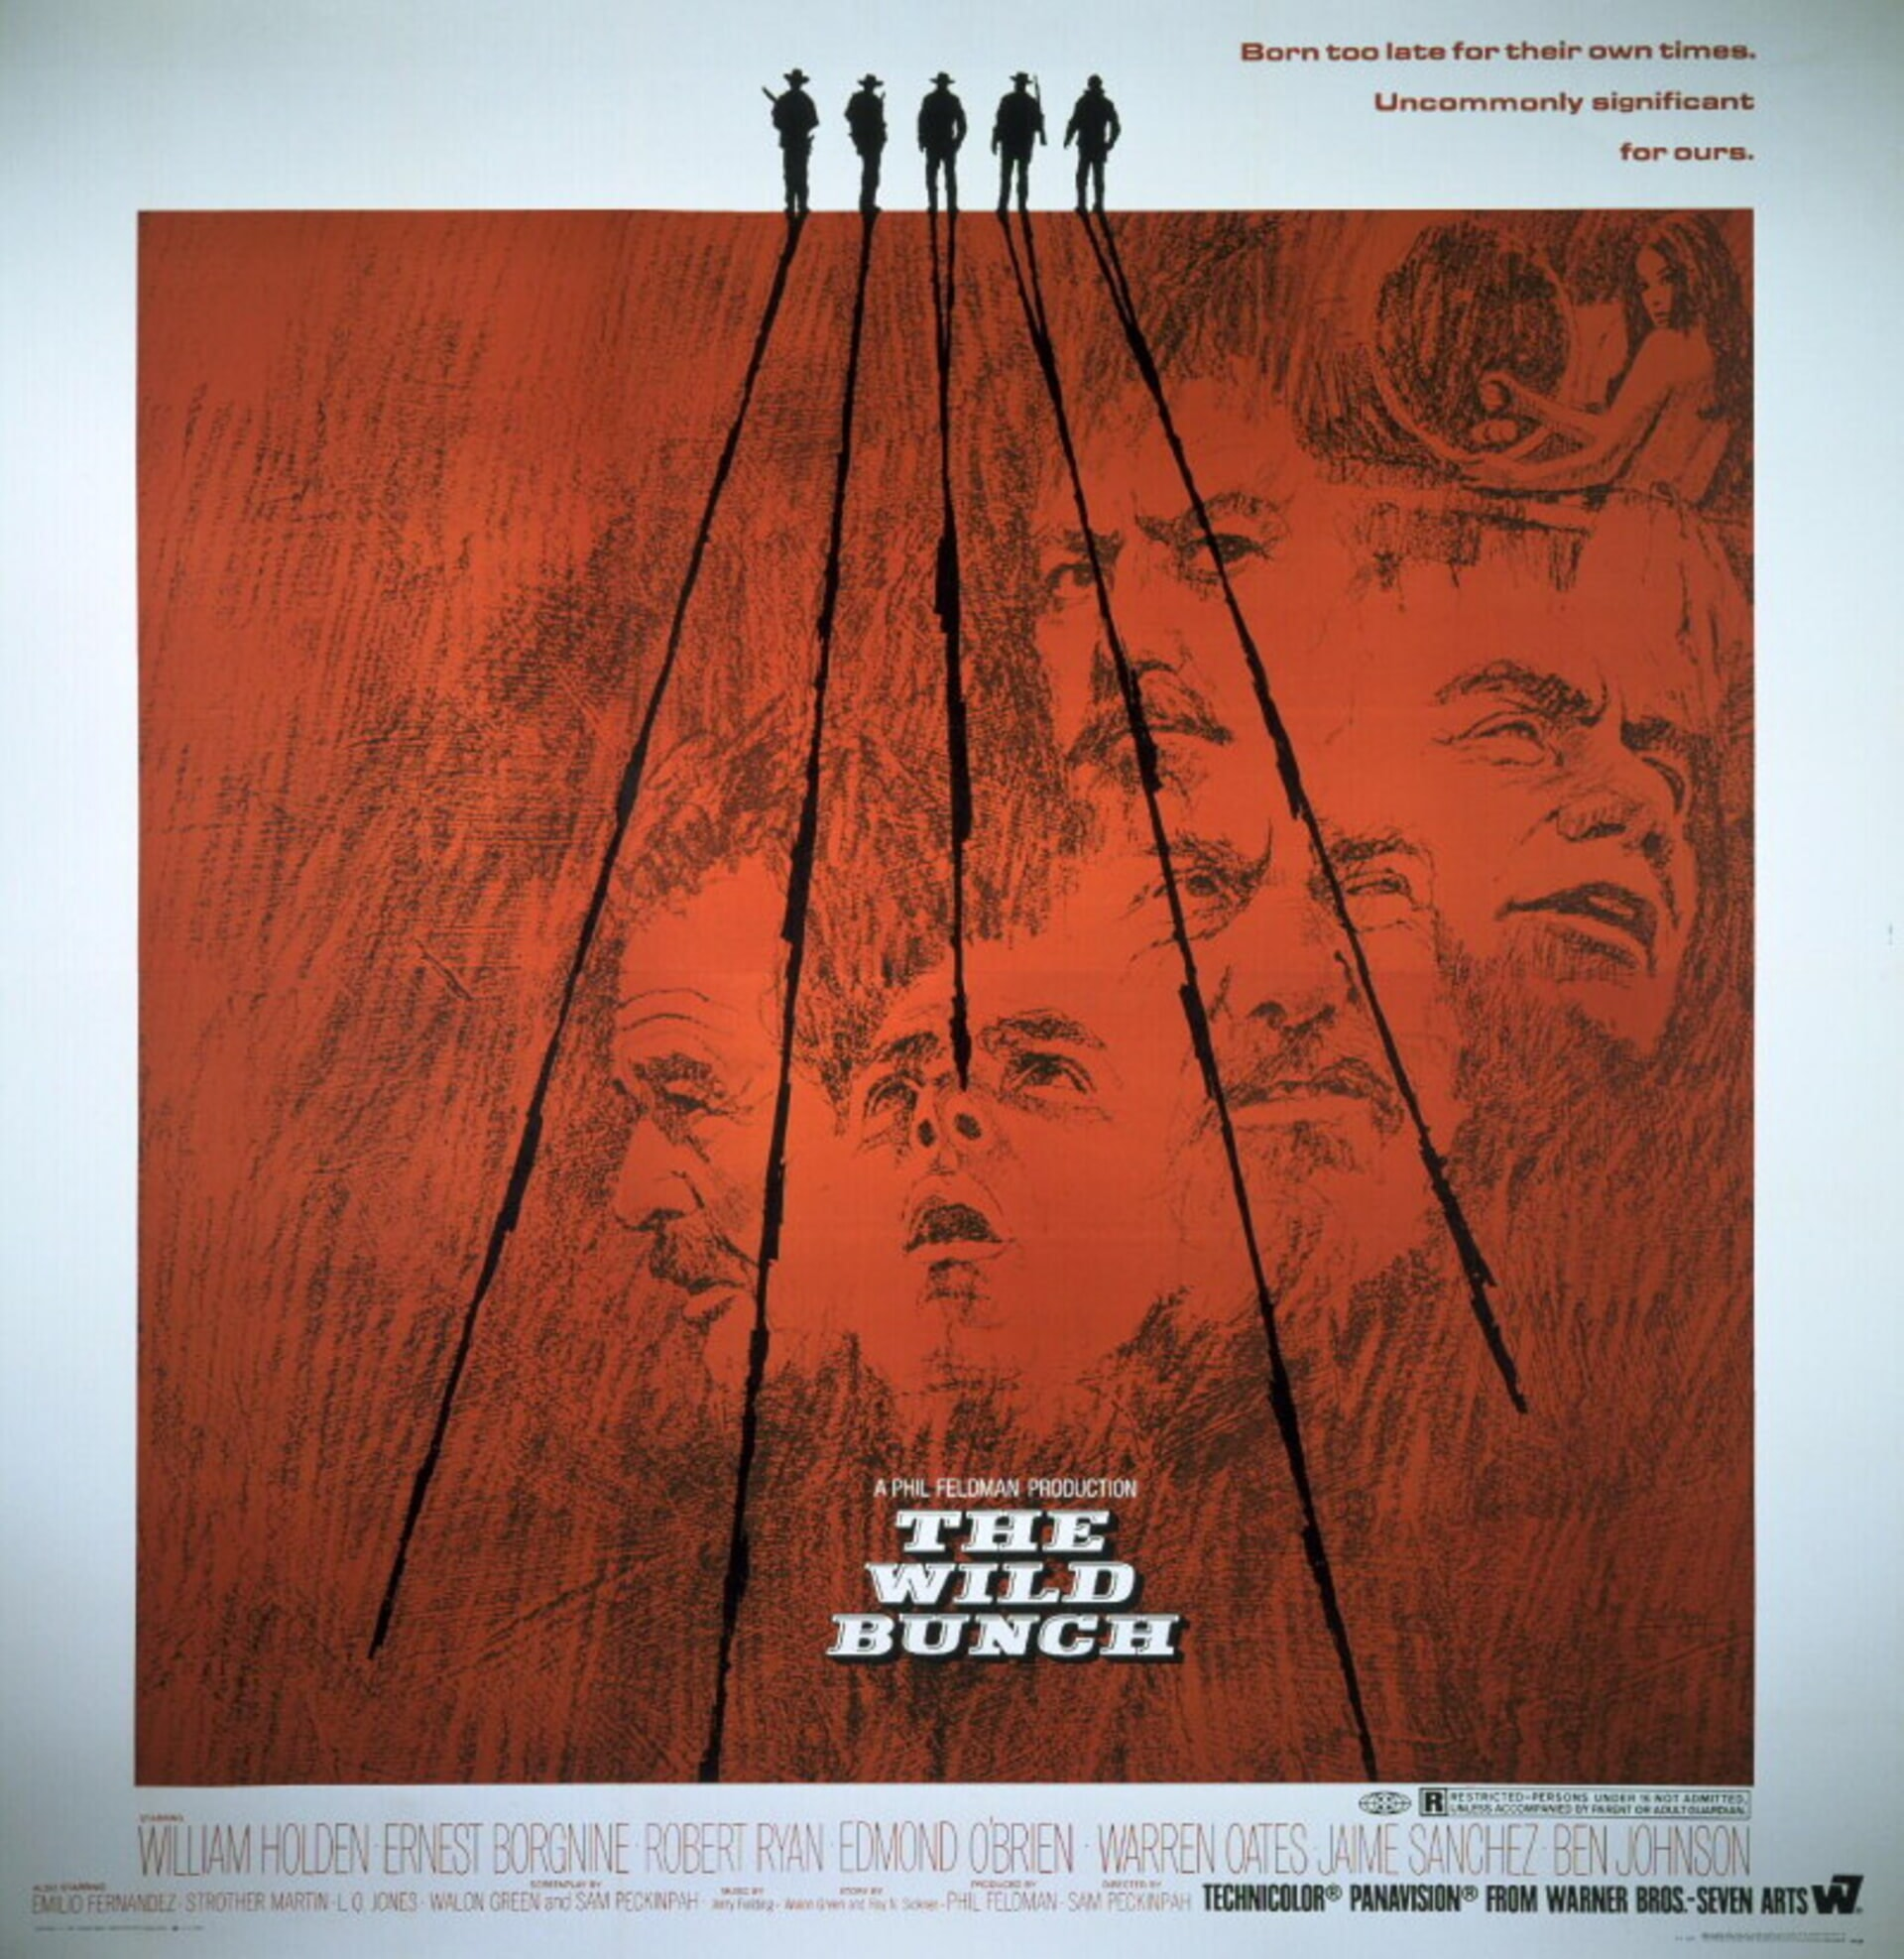 The Wild Bunch - Poster 12